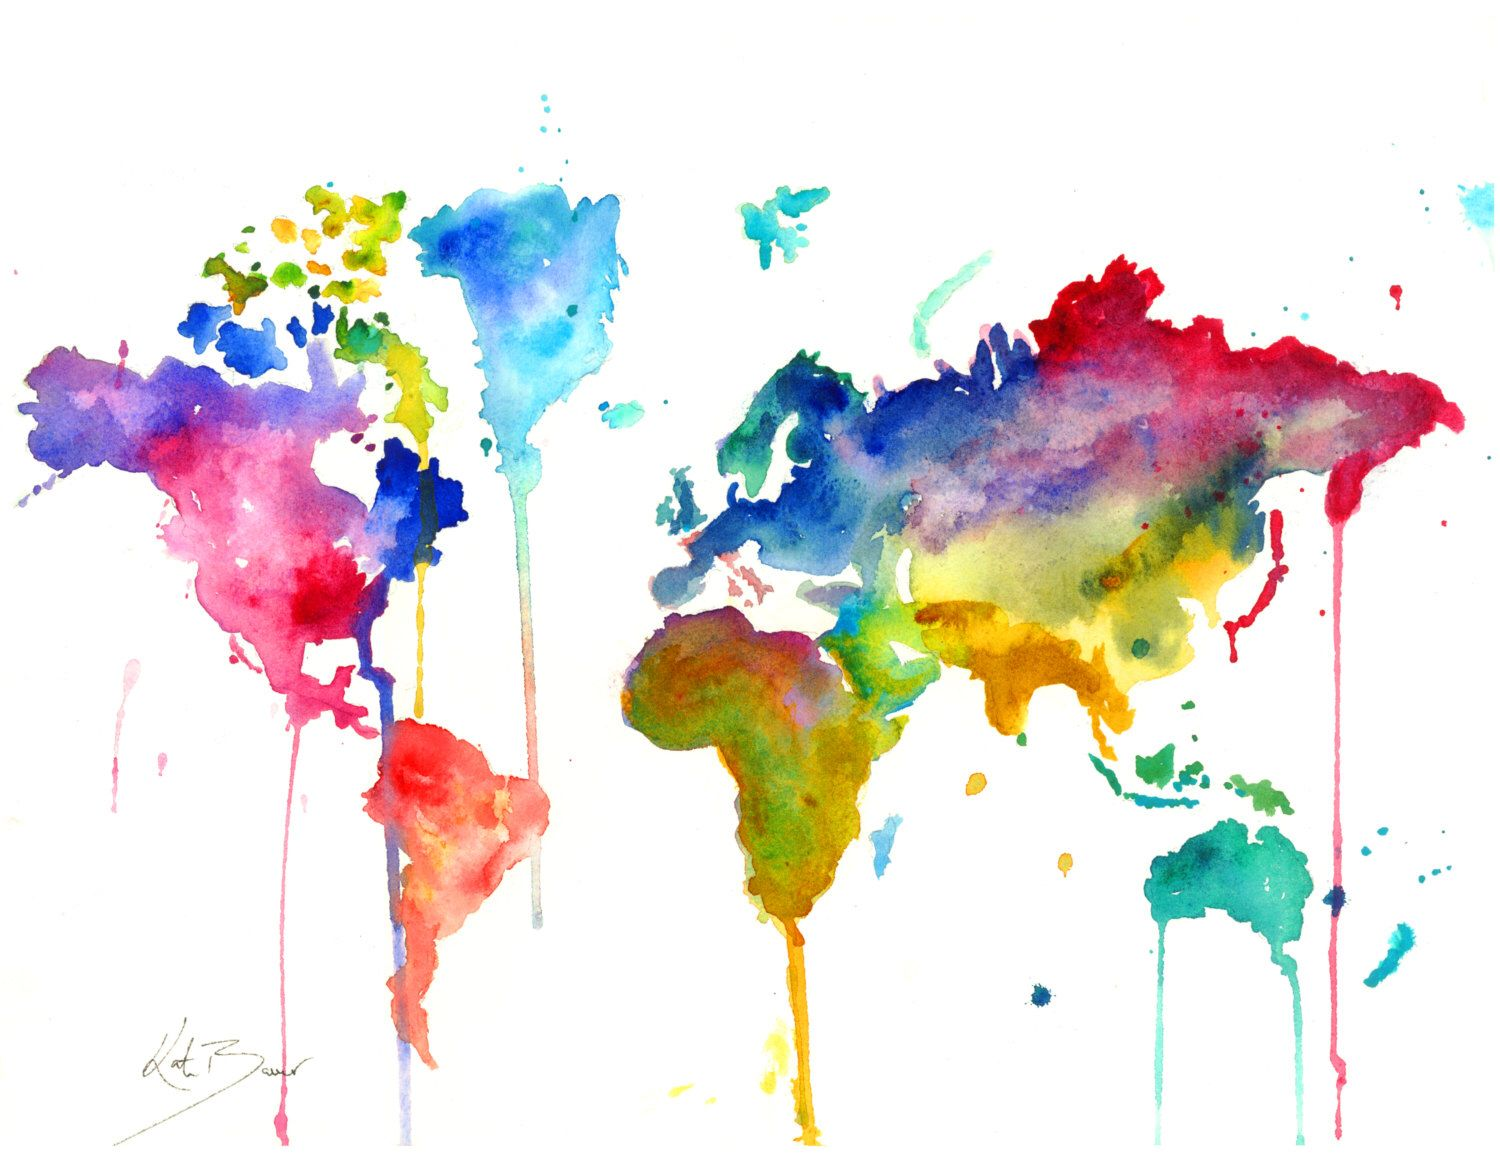 World map print of original watercolor illustration by world map print of original watercolor illustration by milkandhoneybread on etsy https gumiabroncs Image collections